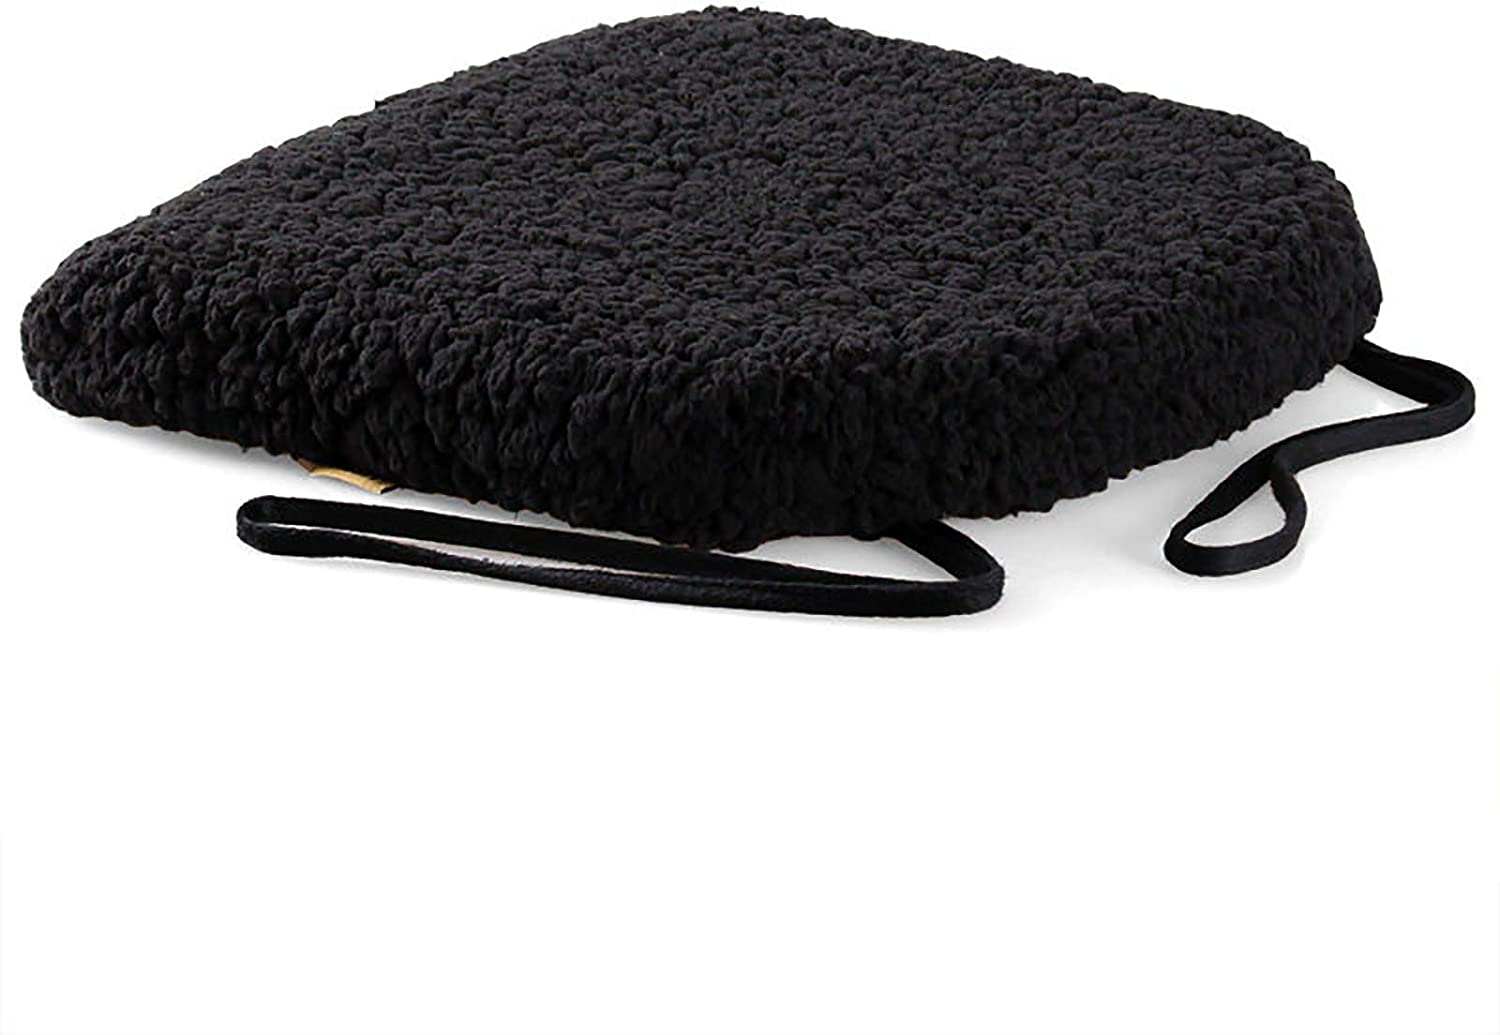 erddcbb Winter Chair 1 year warranty Pads with Large discharge sale Thicken Ties Breathable Overstuff